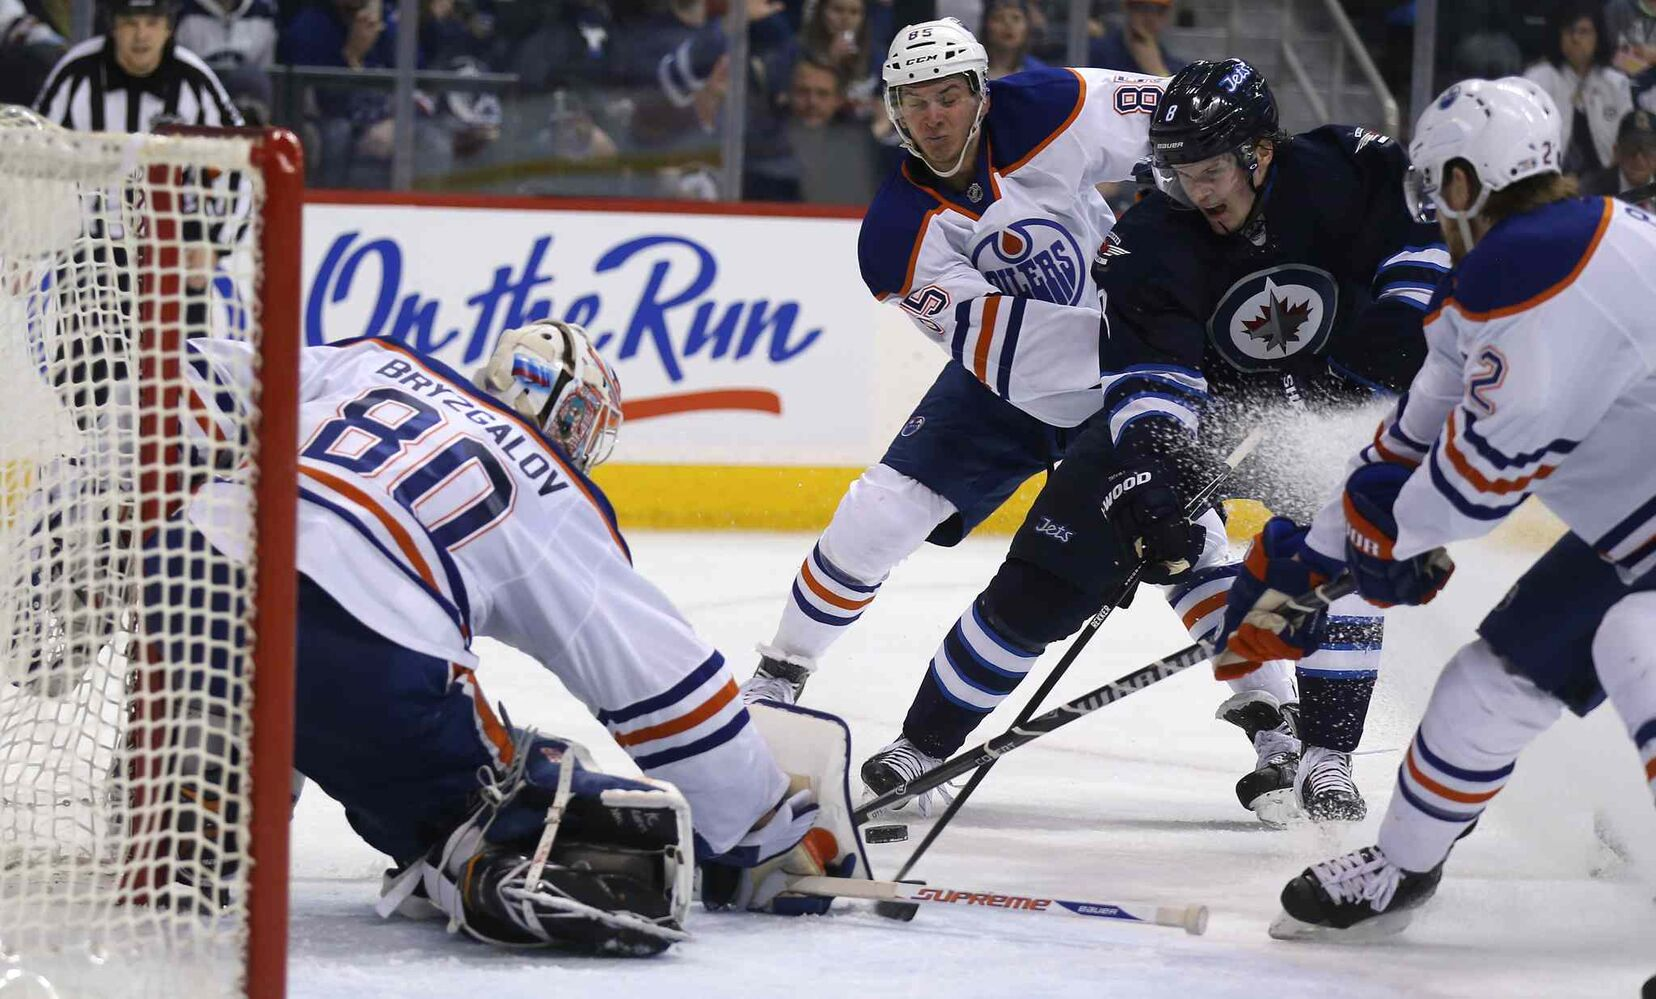 Edmonton Oilers' goaltender Ilya Bryzgalov (80) stops Winnipeg Jets' Anthony Peluso (14) as he drives between Oilers' Martin Marincin (85) and Jeff Petry (2) during the second period Saturday. (Trevor Hagan / Winnipeg Free Press)